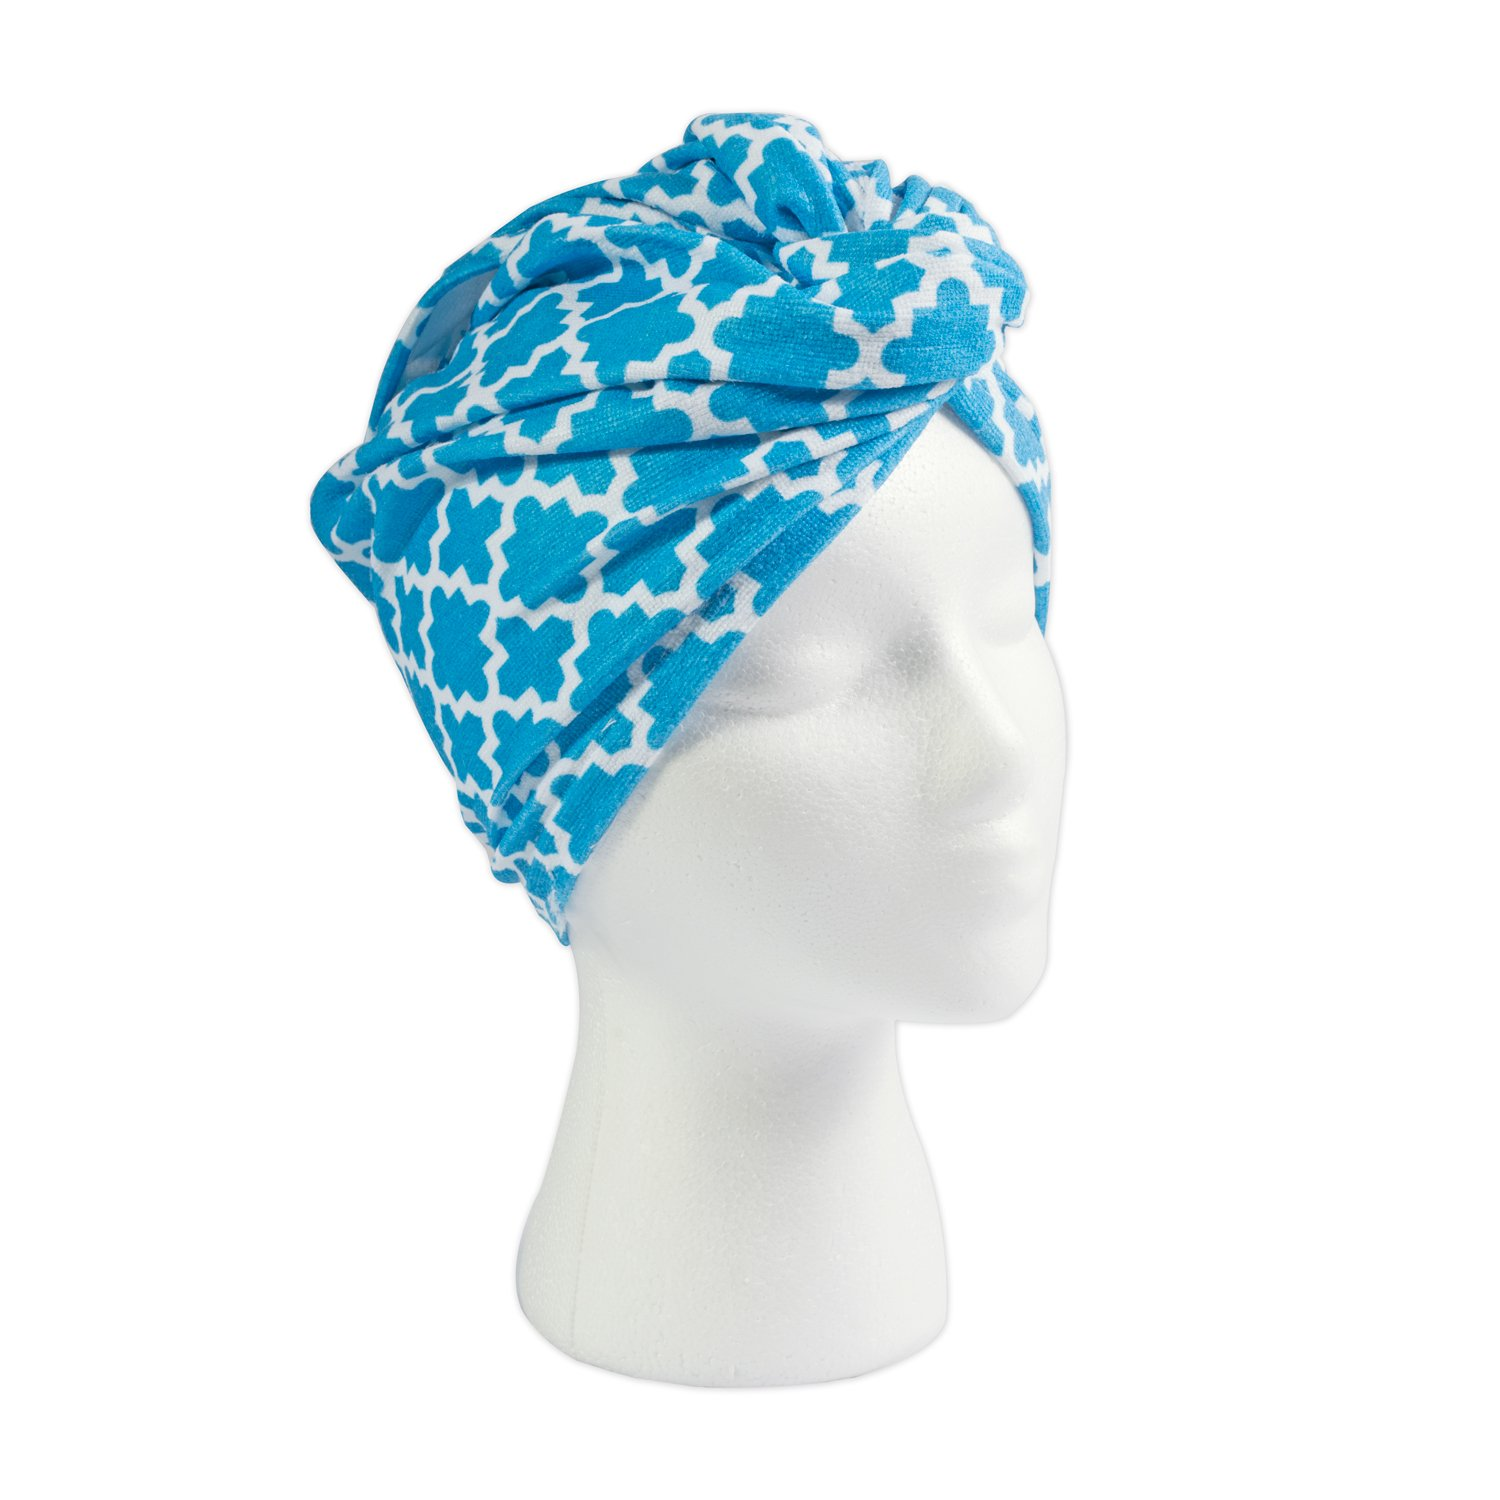 DII Women's Printed Microfiber Shower Hair Wrap, Twist Turban, Hair Towel, Machine Washable, Perfect for College Dorm, Pools, Gyms, Beaches, Locker Rooms, Bathroom, Set of 3, Dahlia Aqua CAMZ37049